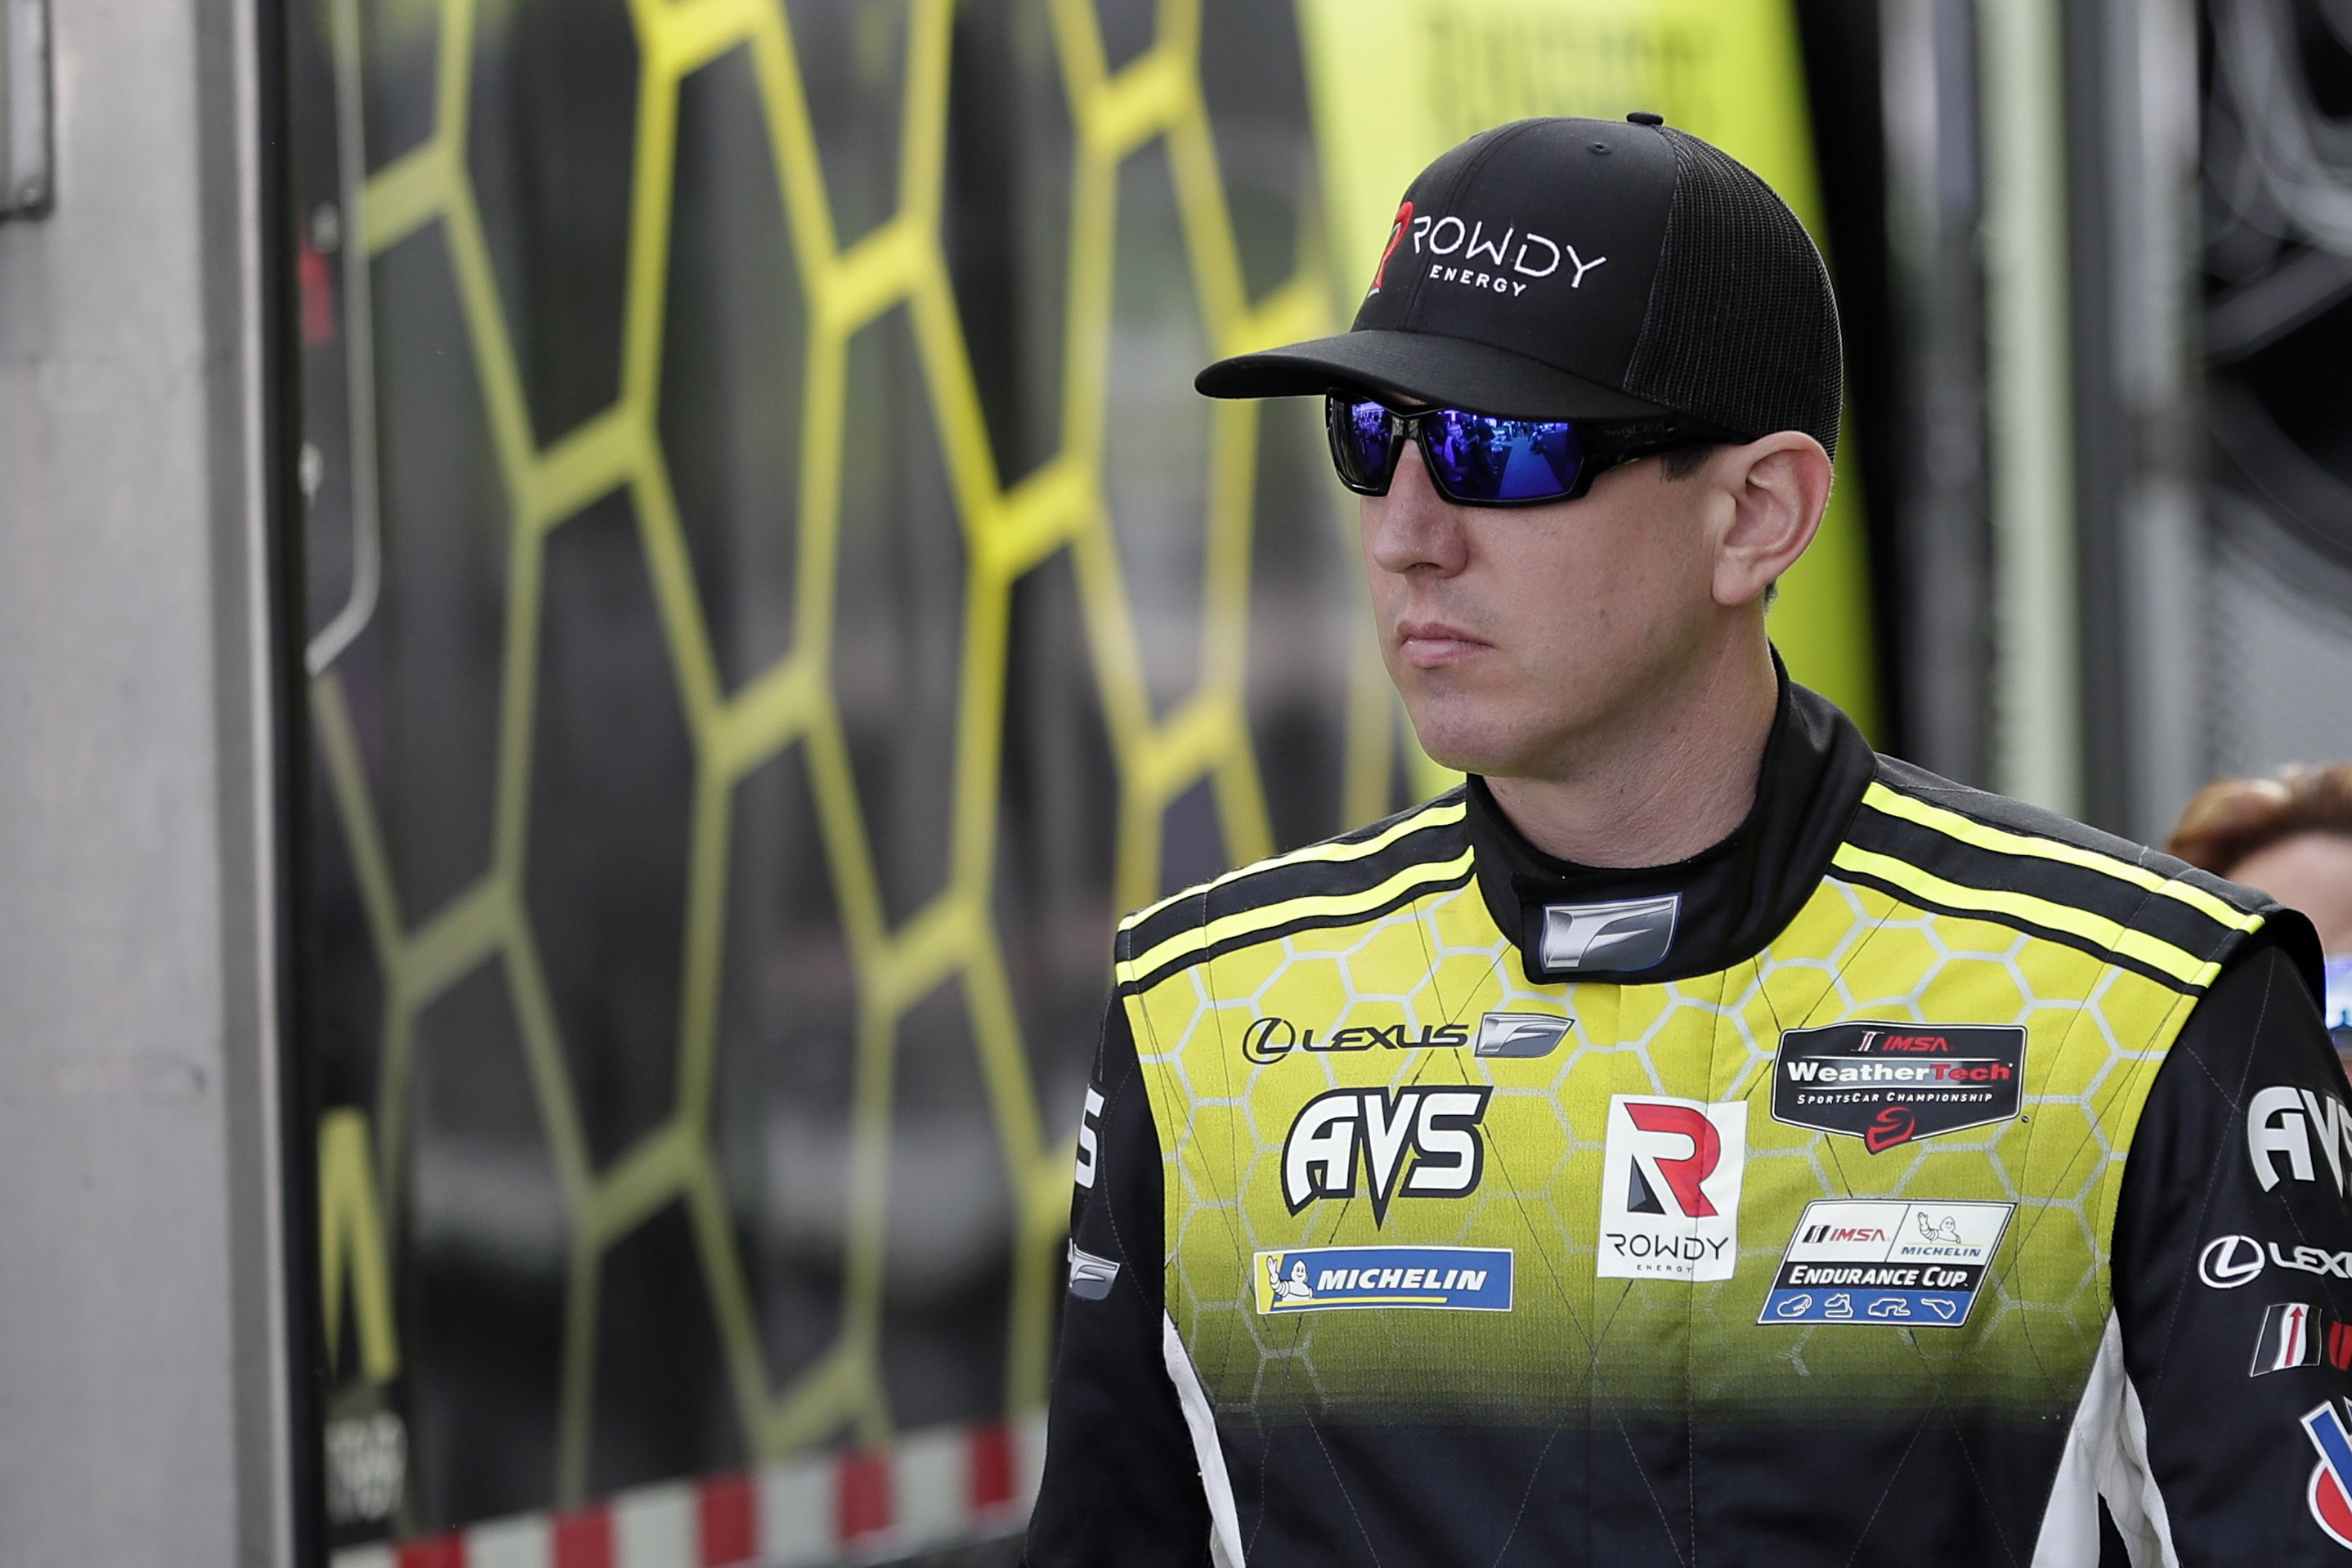 Kyle Busch has 2 NASCAR titles and an eye on at least 5 more – Associated Press